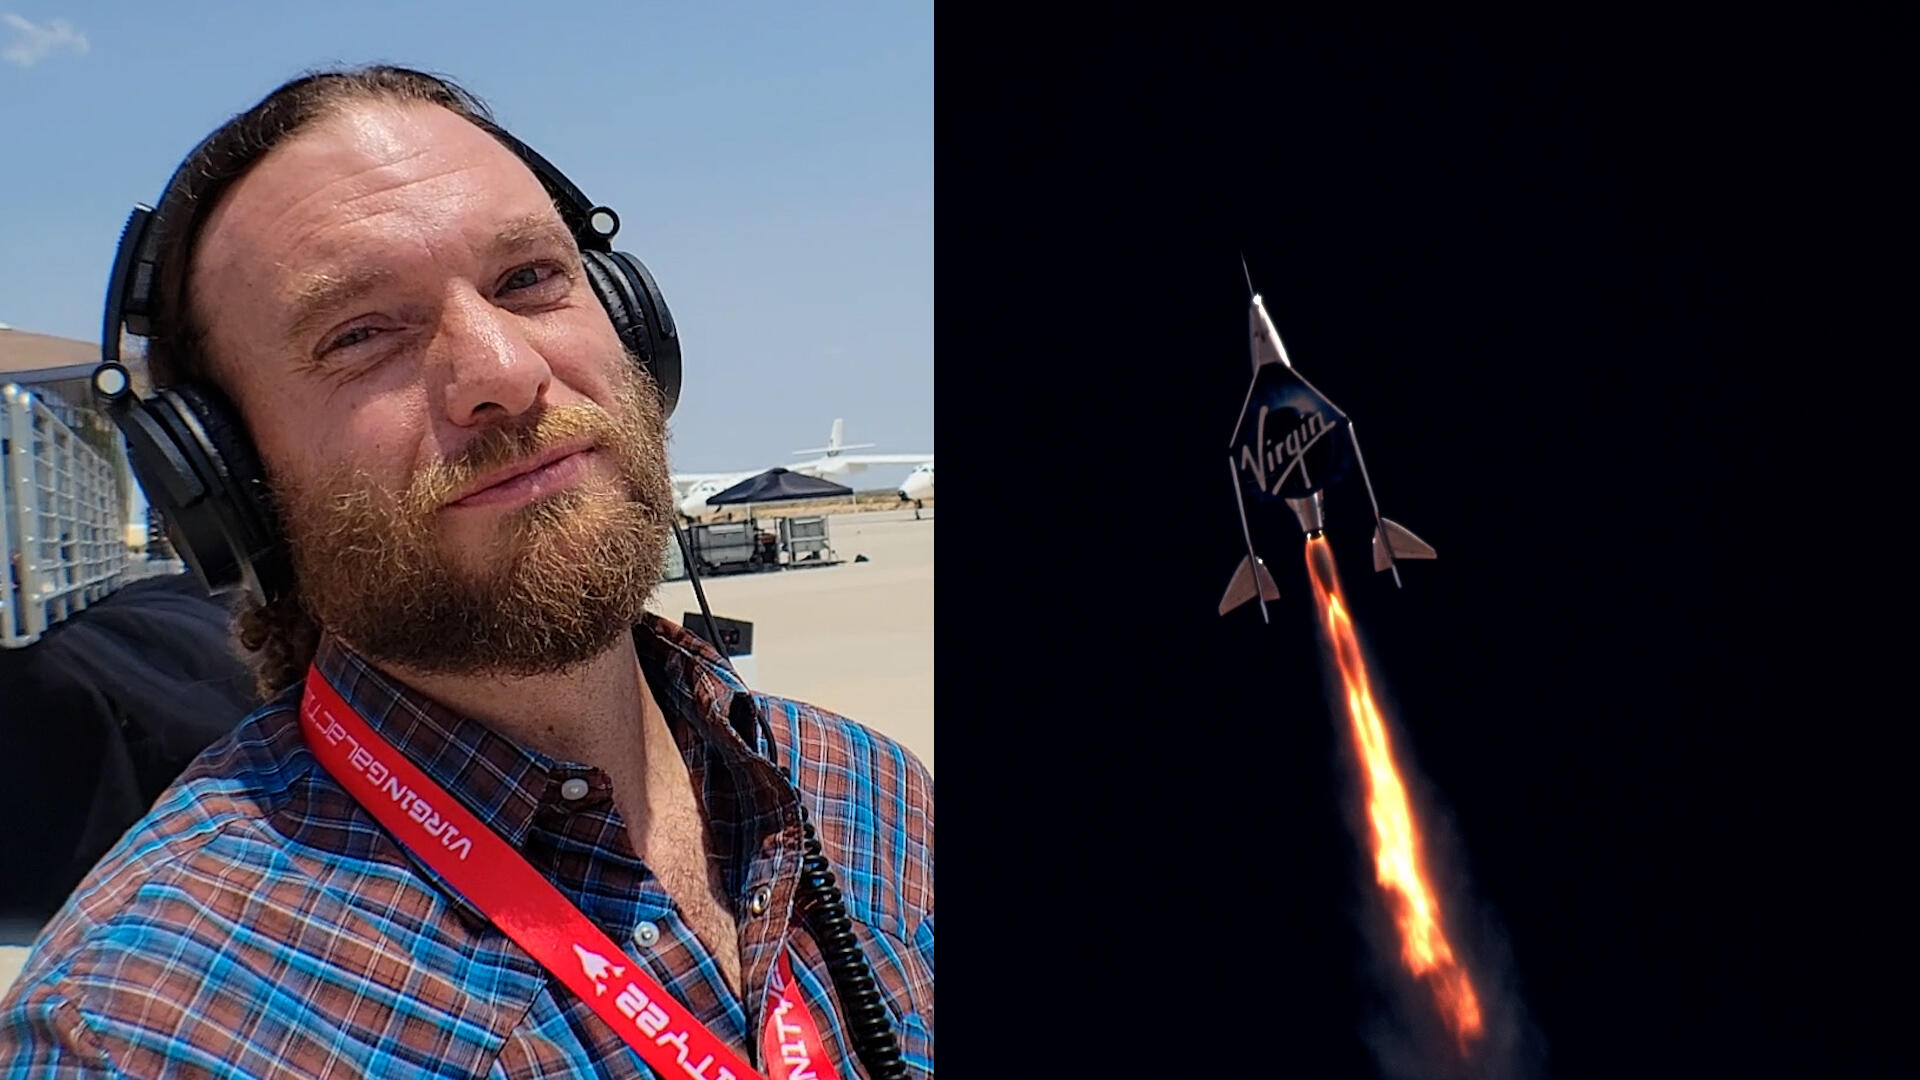 Video: I watched Branson's space journey from the tarmac